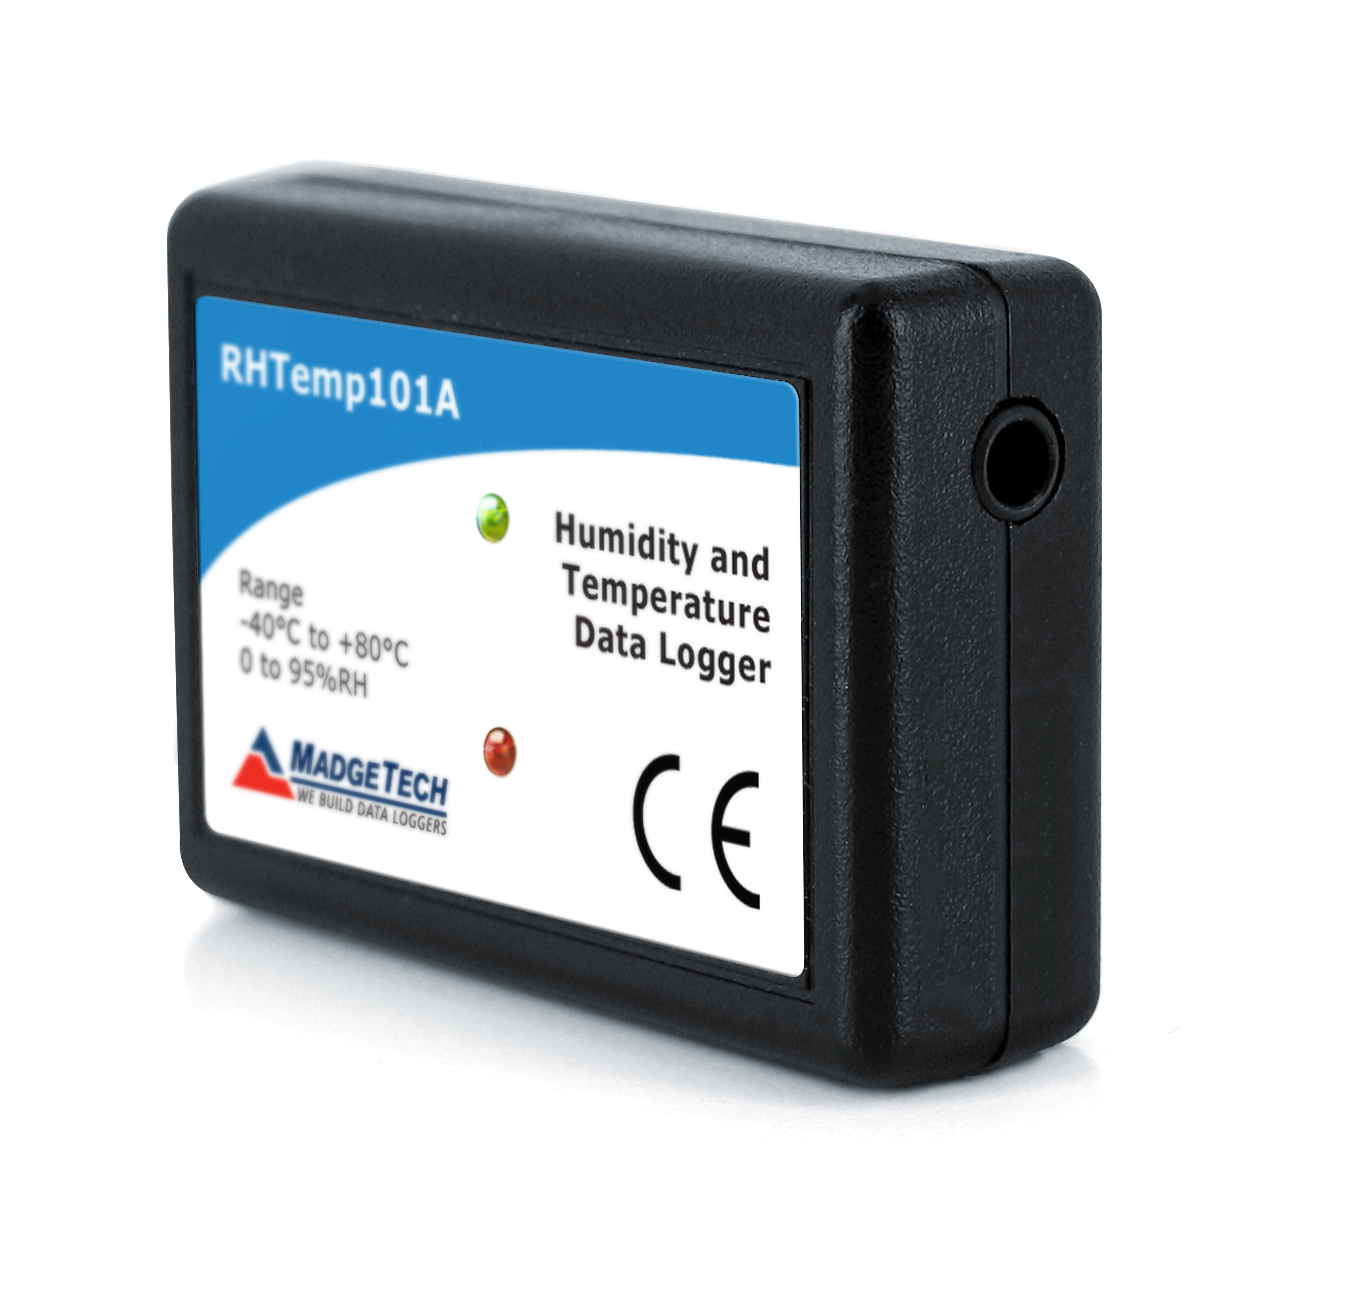 RHTemp101A temperature and humidity data logger